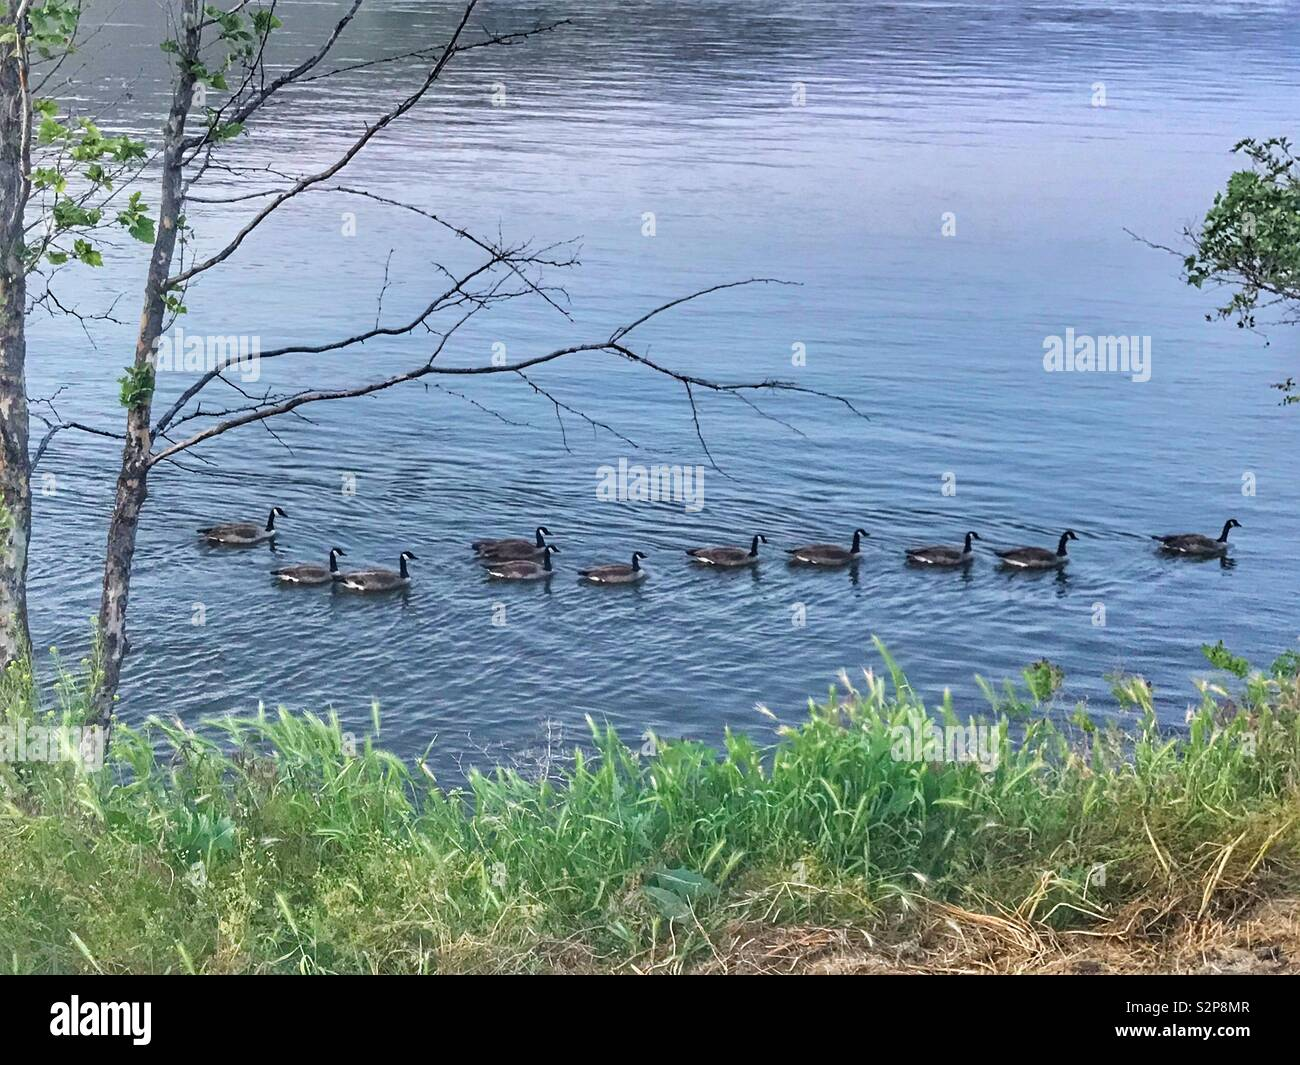 Geese all lined up in a row as they draft each others going up river. - Stock Image